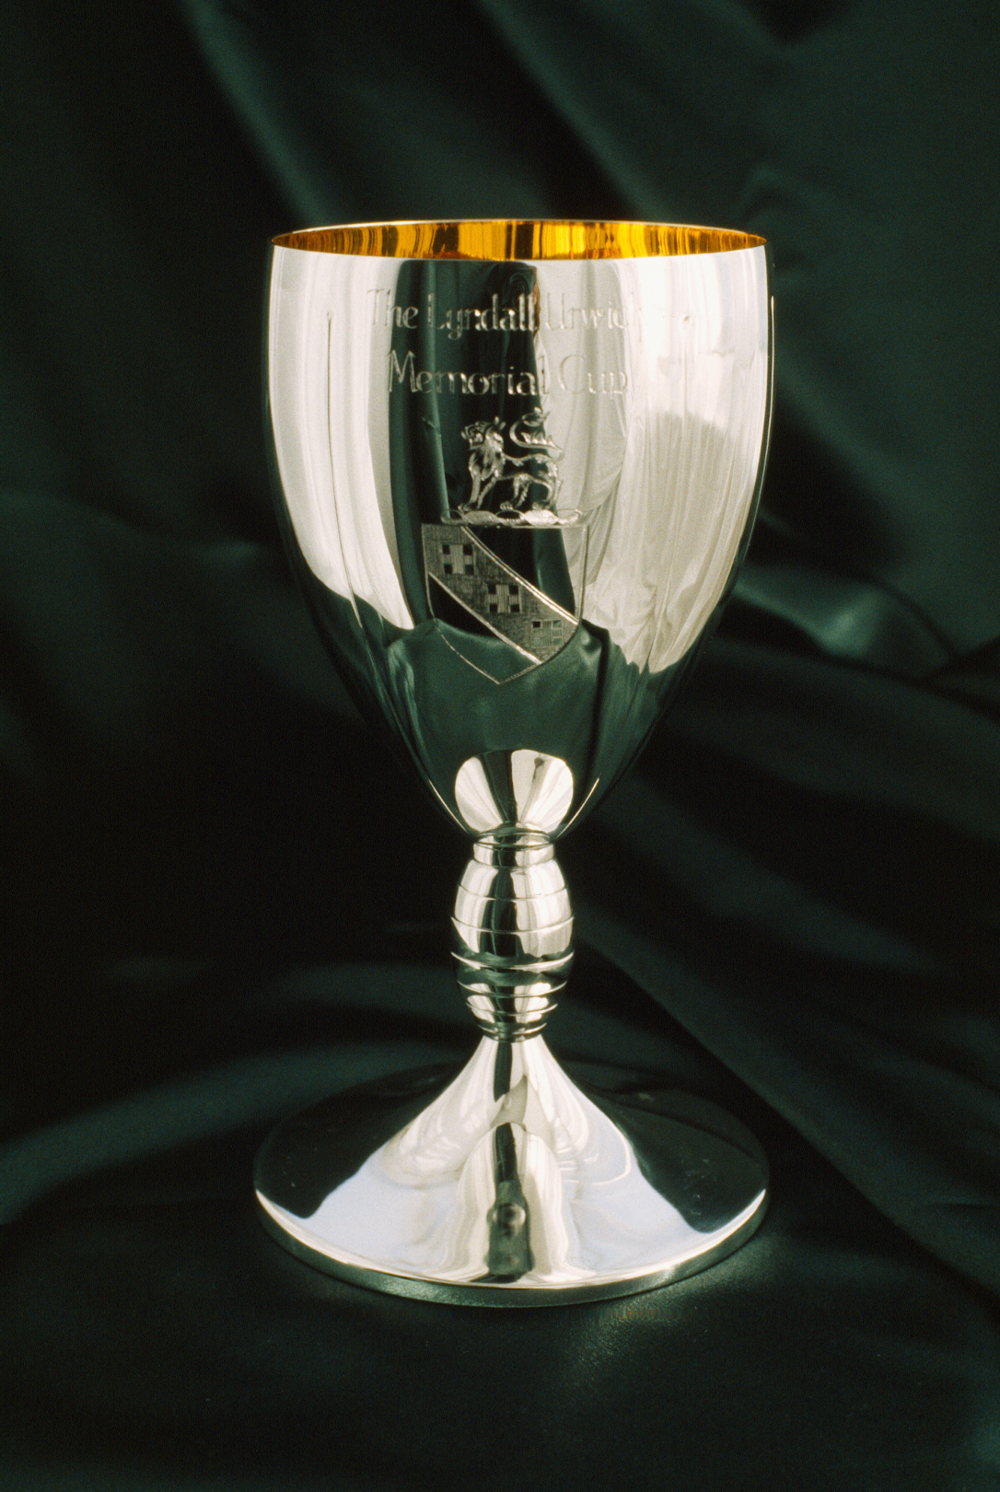 Lyndall Urwick Memorial Cup: With engraving and chased detail